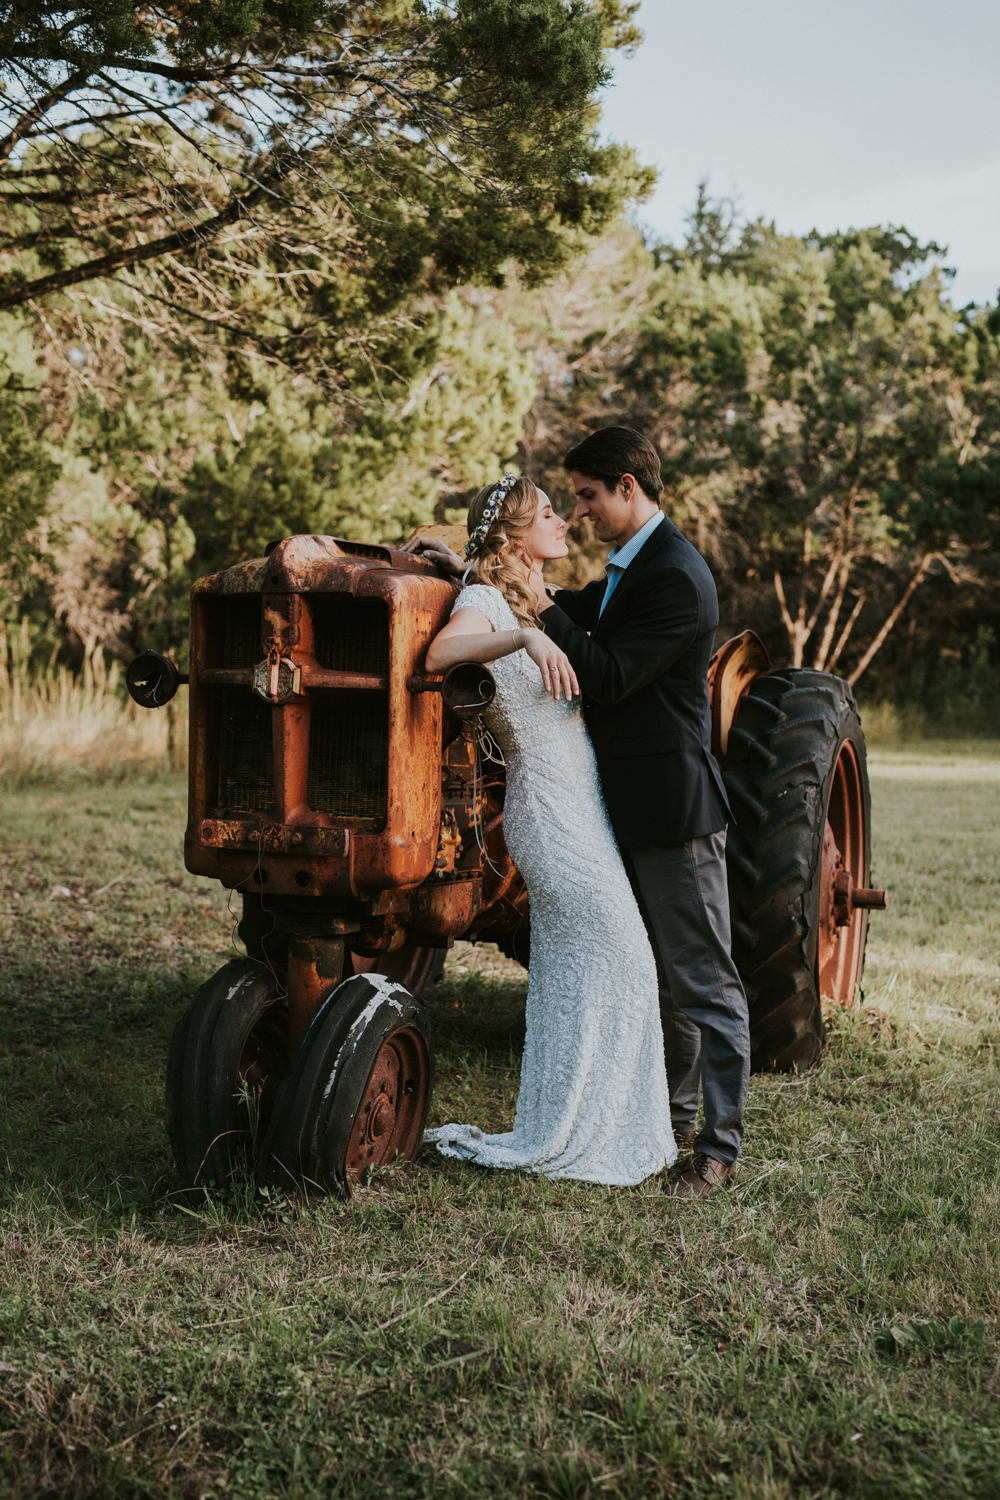 Rustic Ranch Wedding Photography - Diana Ascarrunz Photography - Austin Wedding Photographer-49.jpg